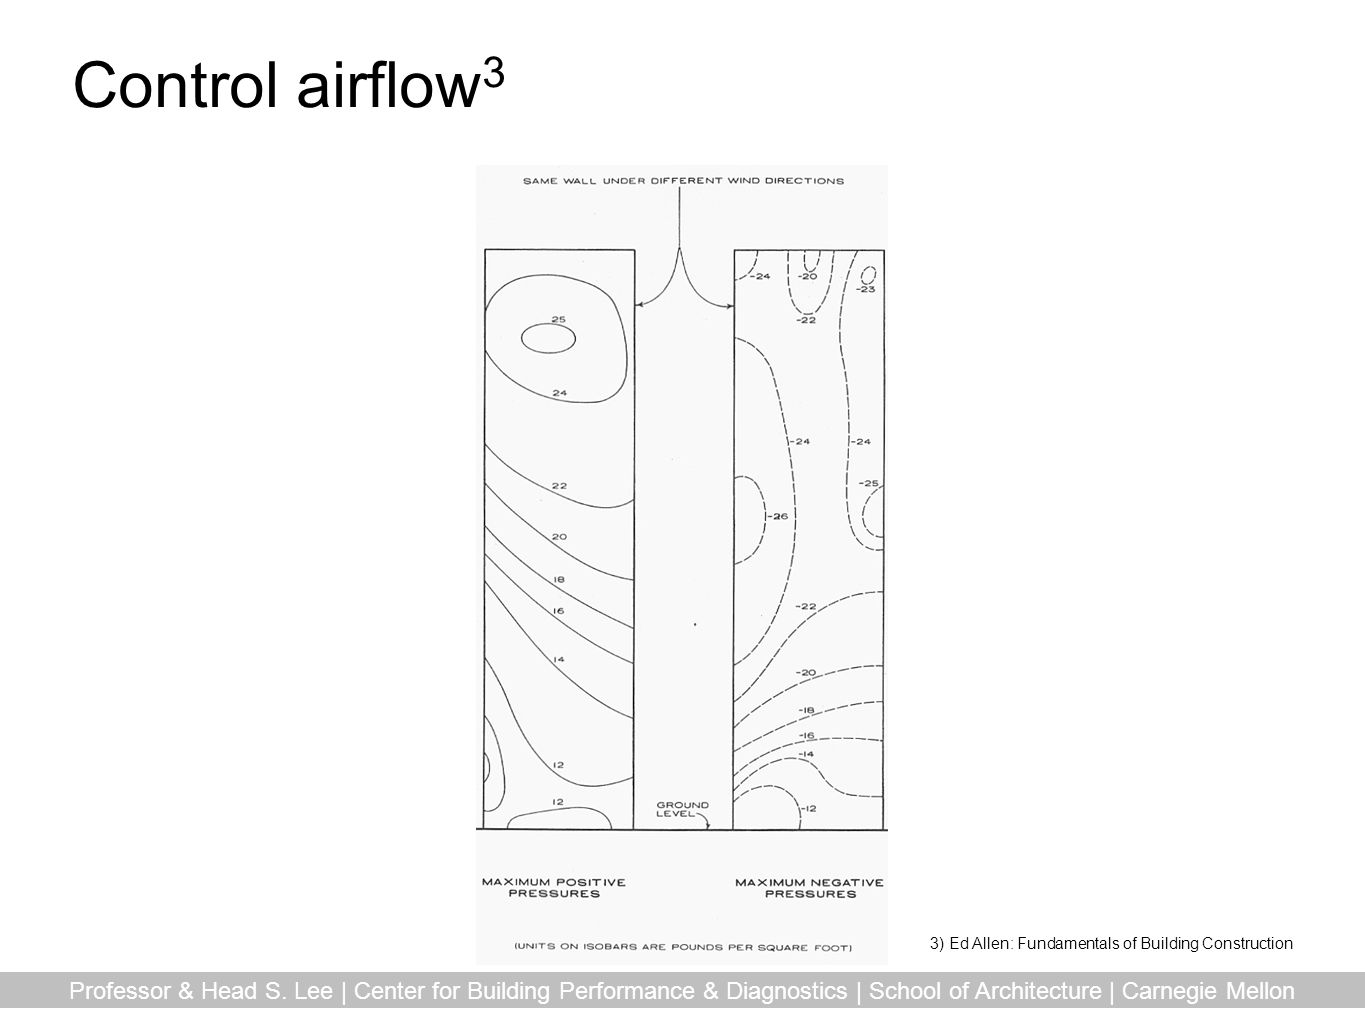 Control airflow3 3) Ed Allen: Fundamentals of Building Construction.